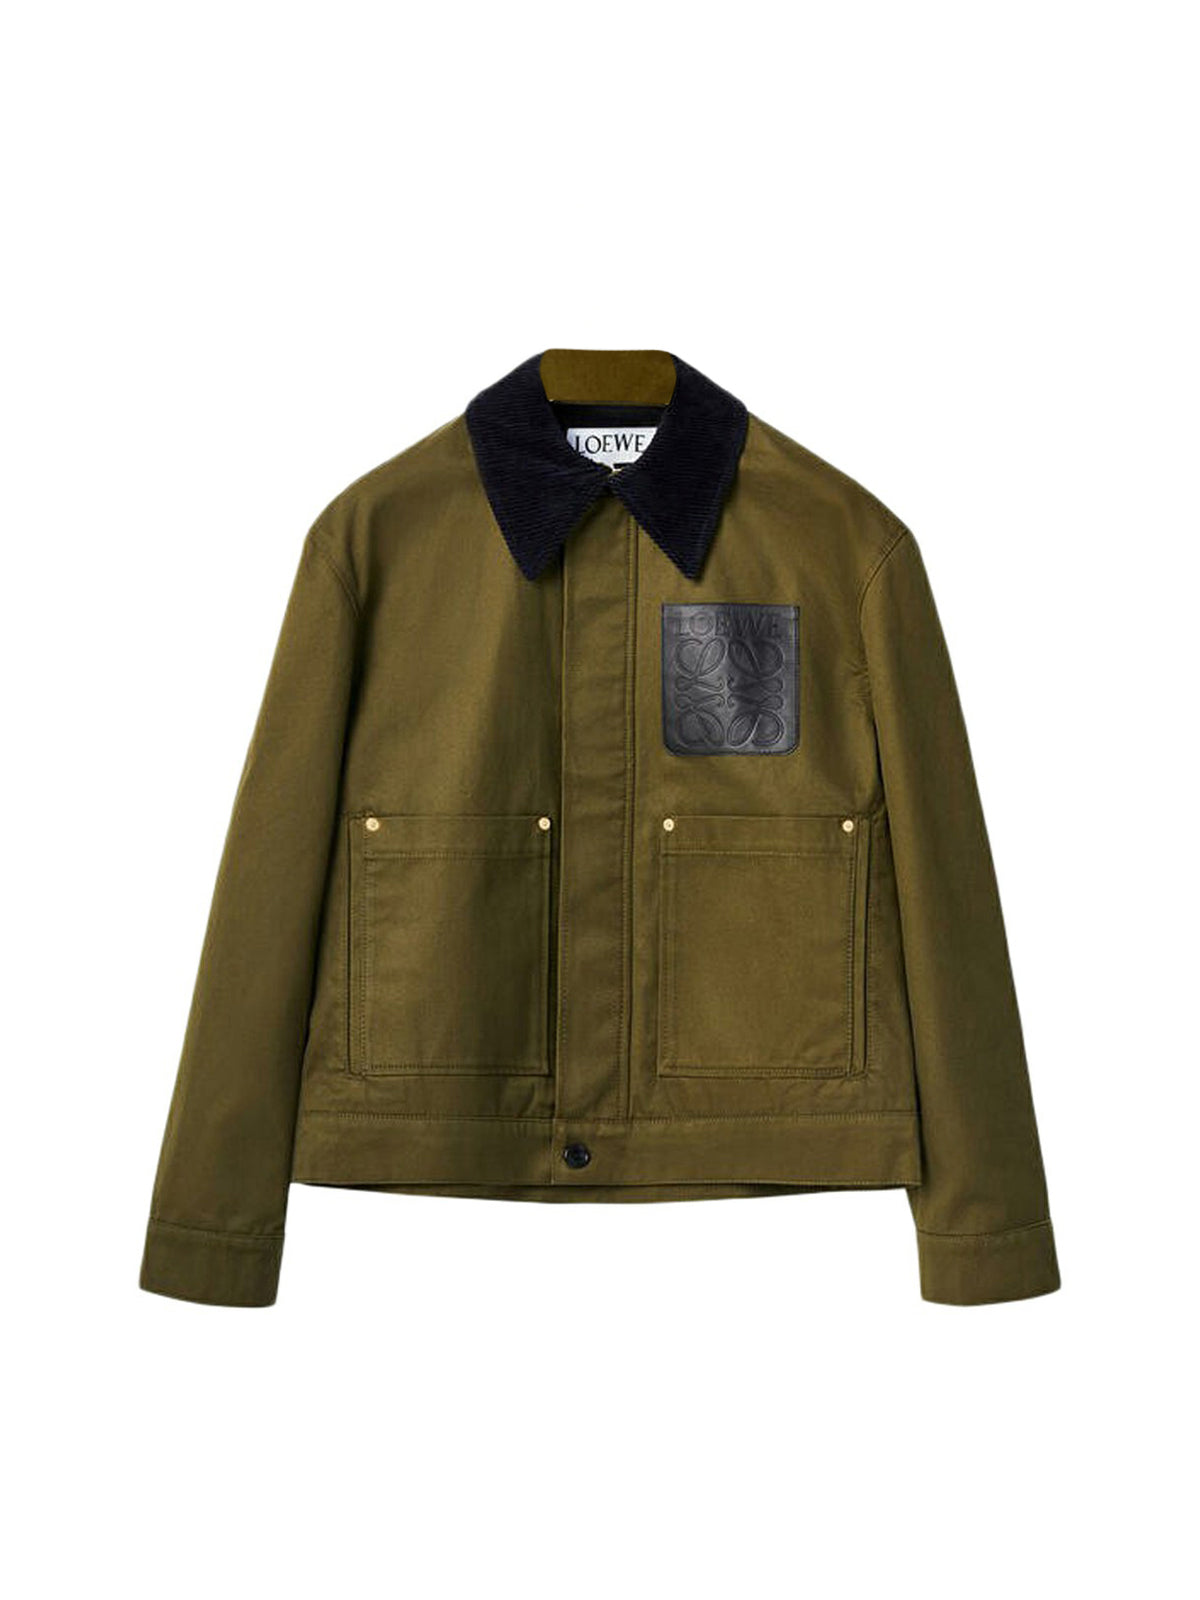 Short workwear jacket in cotton